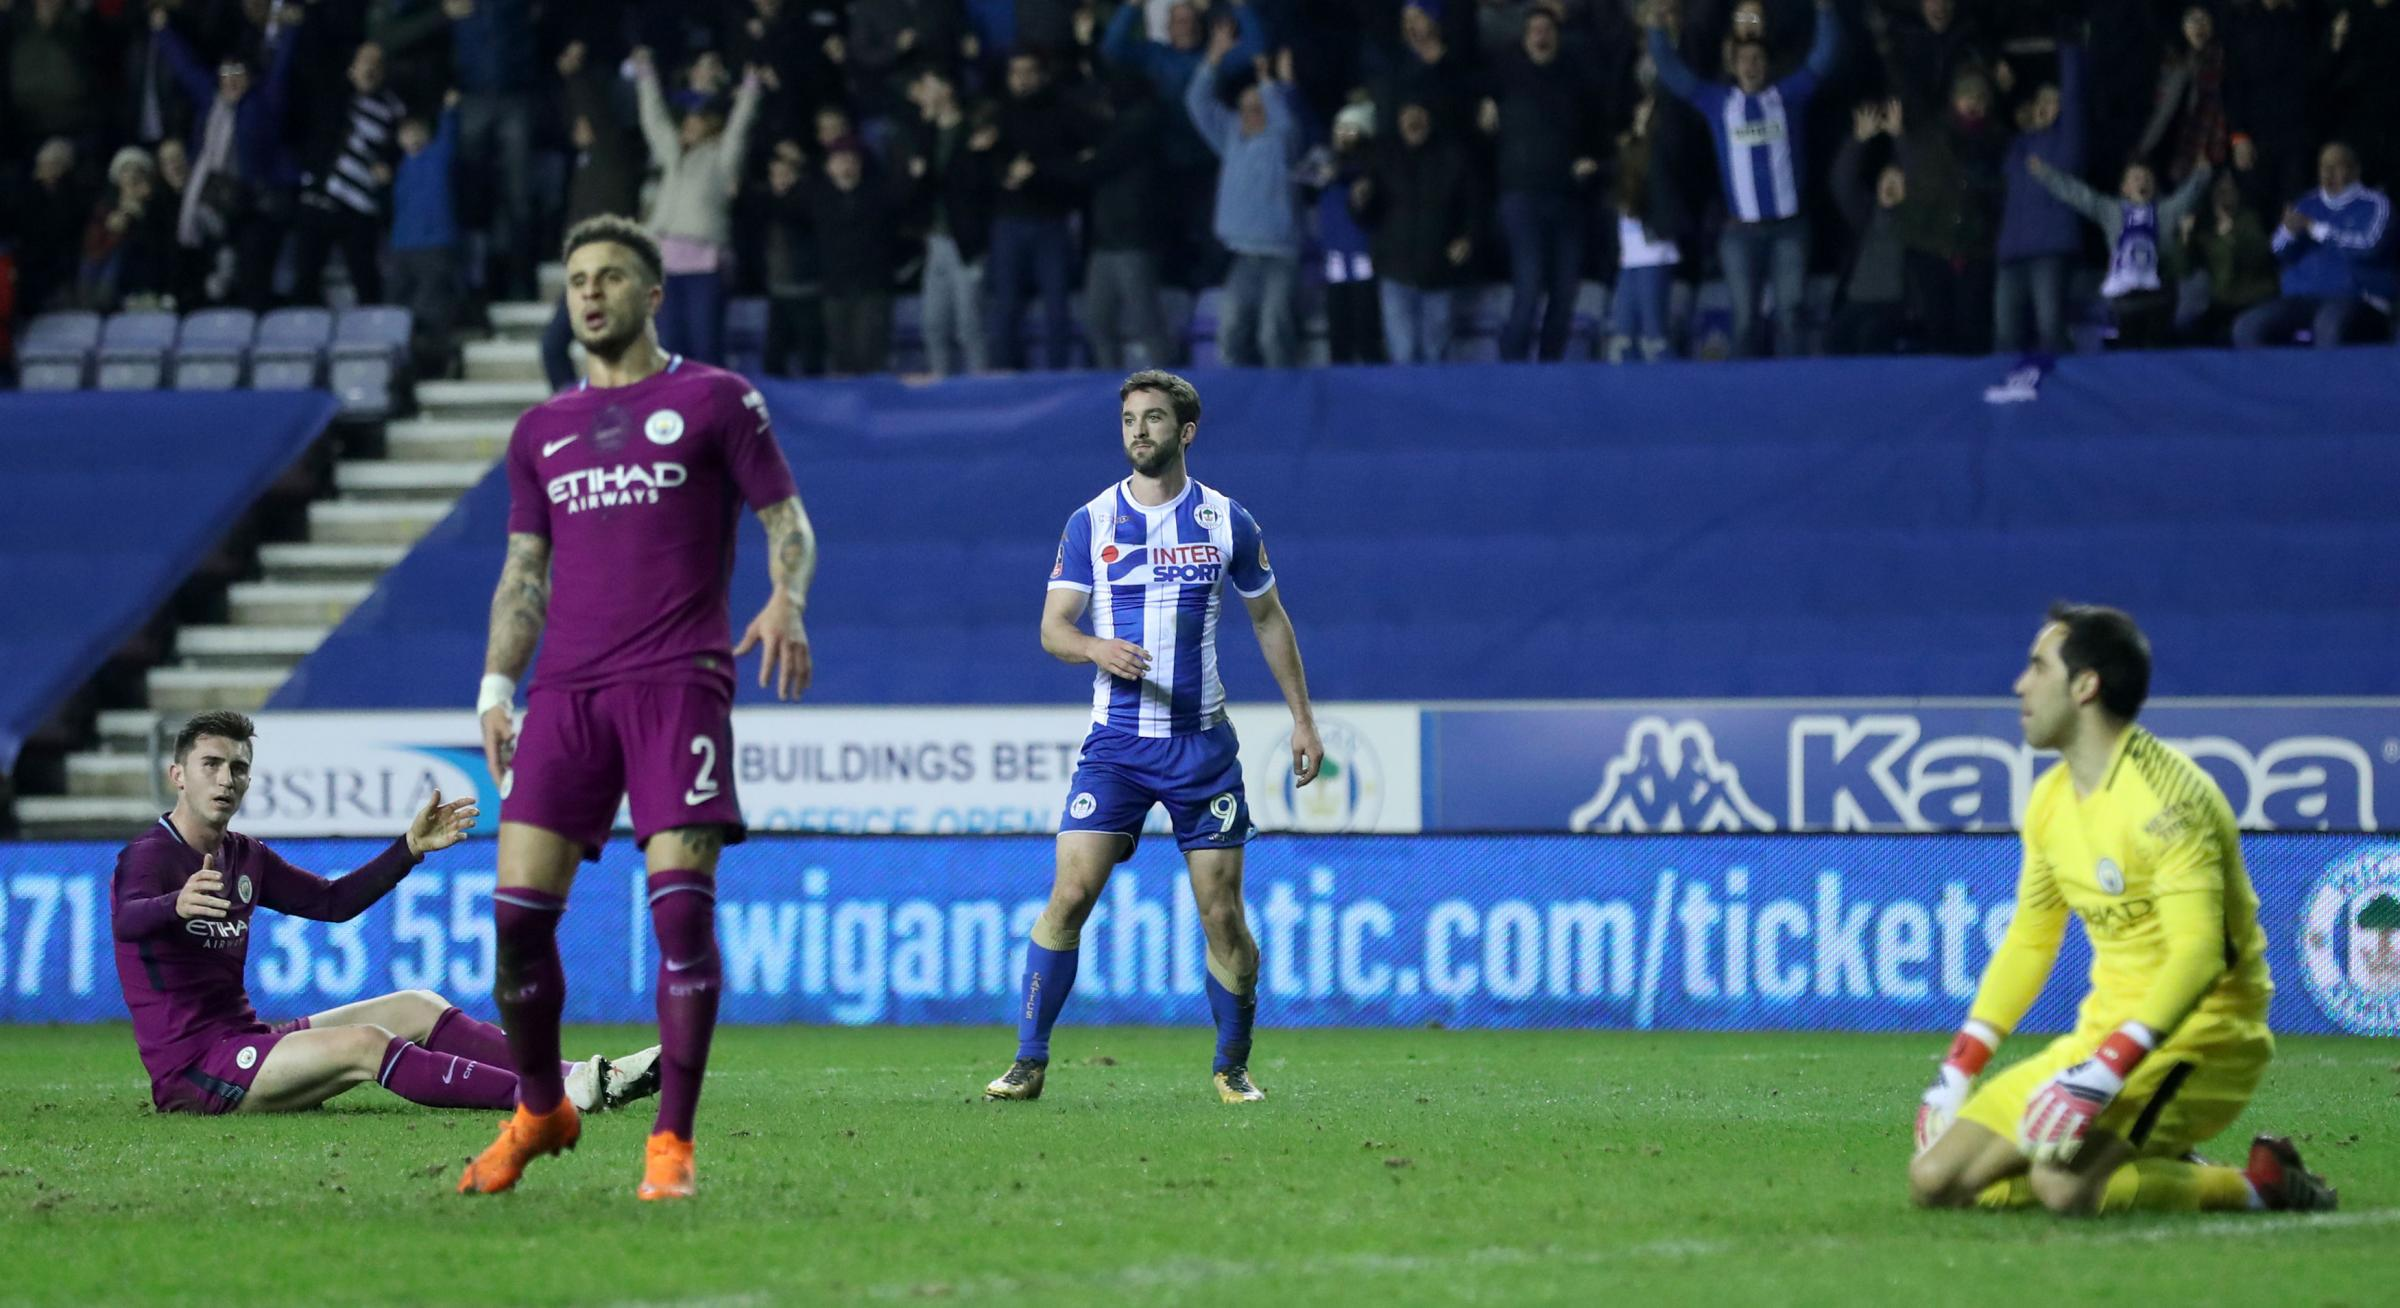 Wigan Athletic's Will Grigg (centre right) reacts after scoring his side's first goal of the game during the Emirates FA Cup, Fifth Round match at the DW Stadium, Wigan. PRESS ASSOCIATION Photo. Picture date: Monday February 19, 2018. See PA story